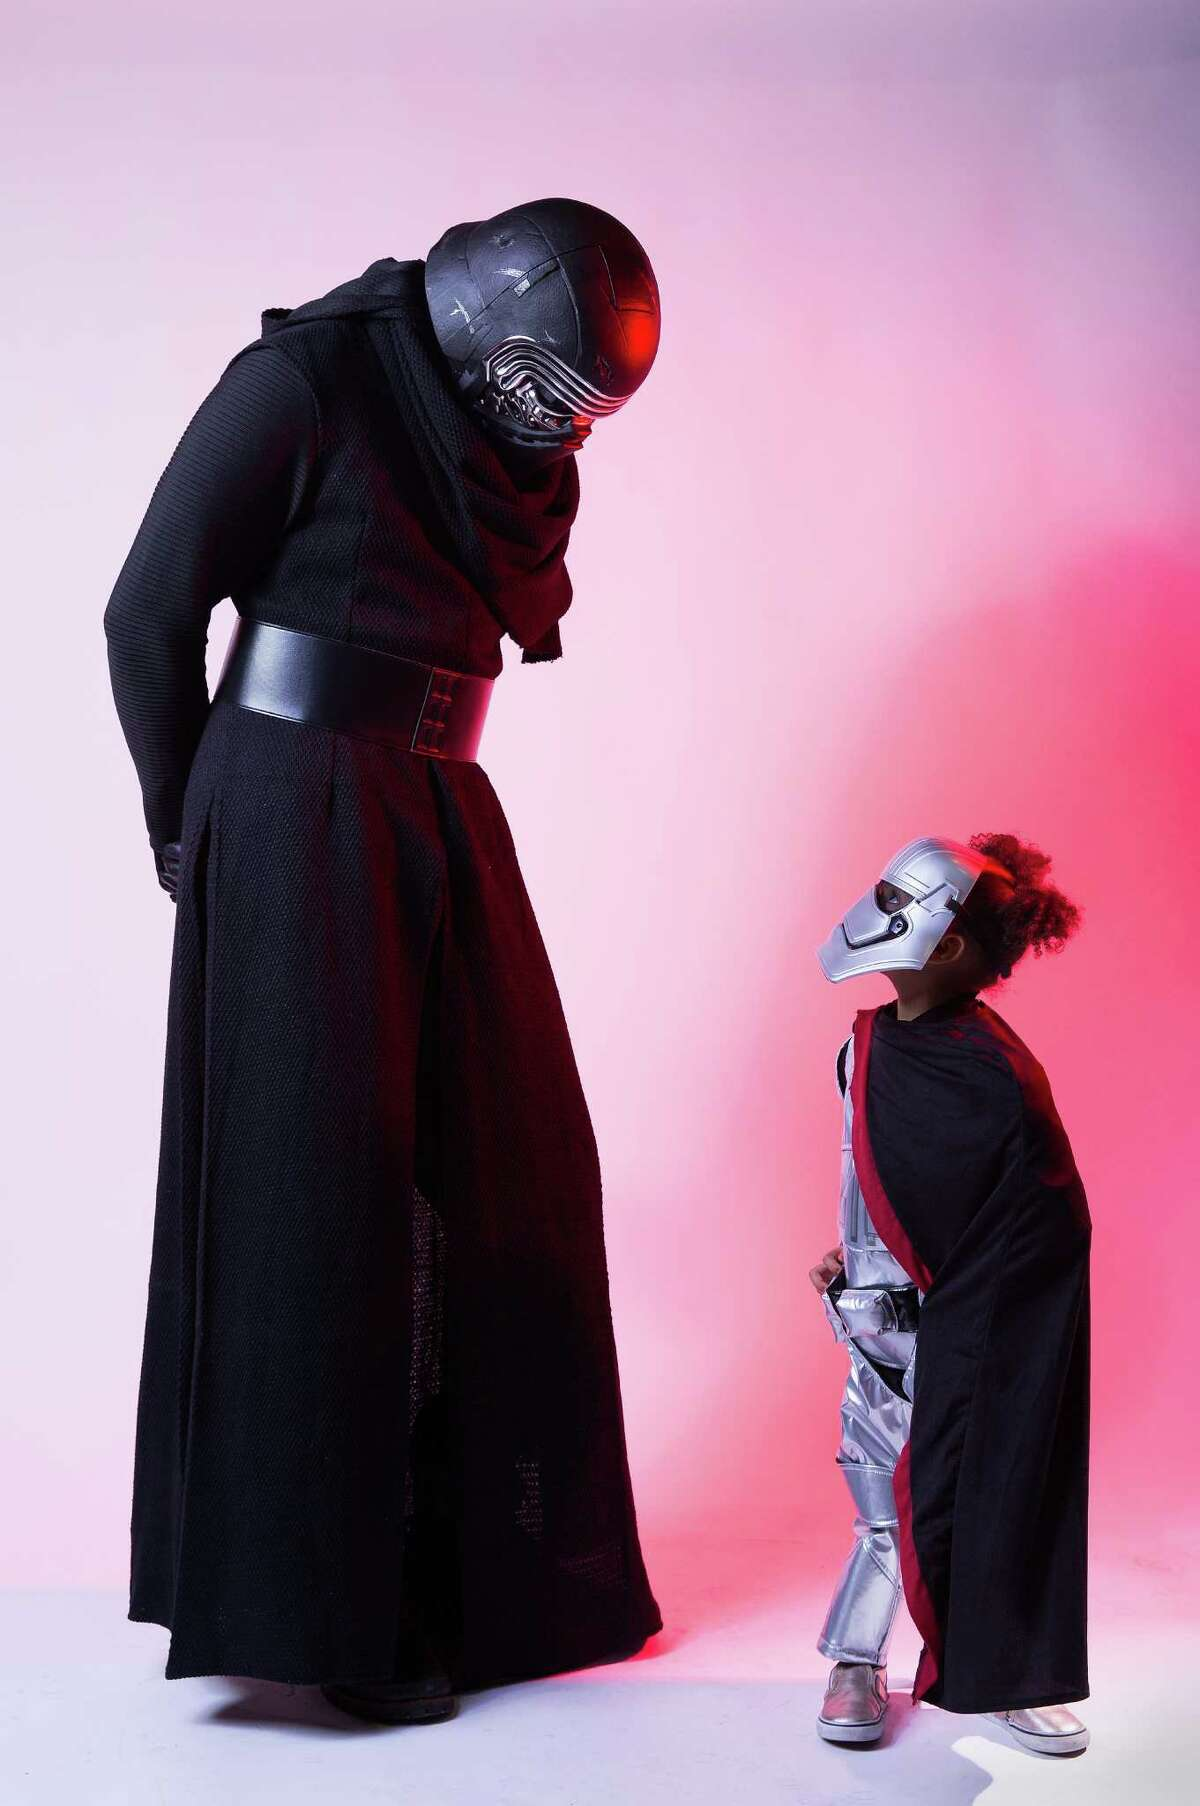 Sean-Michael O'Brien and his daughter Olive dressed as Kylo Ren and Captain Phasma from Star Wars at the 2016 Emerald City ComiCon, Saturday, April 9, 2016.